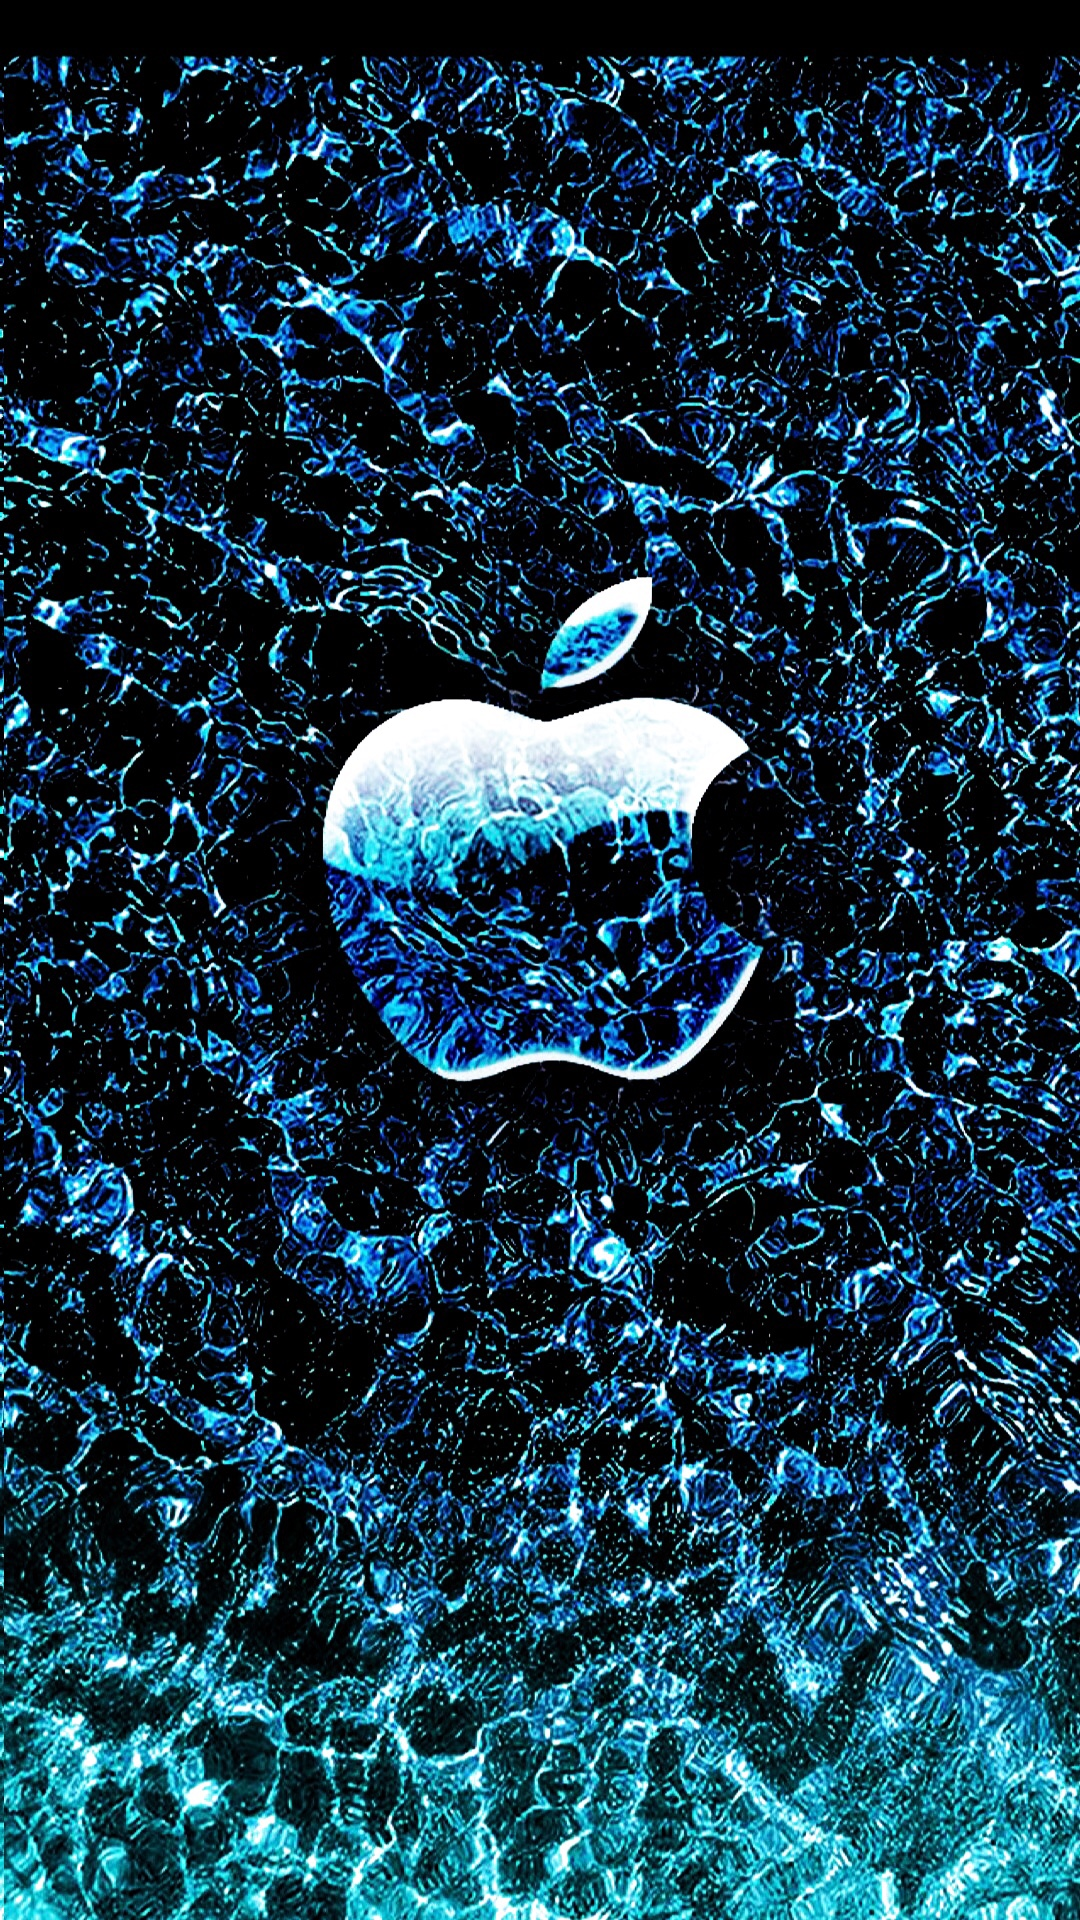 apple wallpaper..post your creative apple wallpaper - page 39